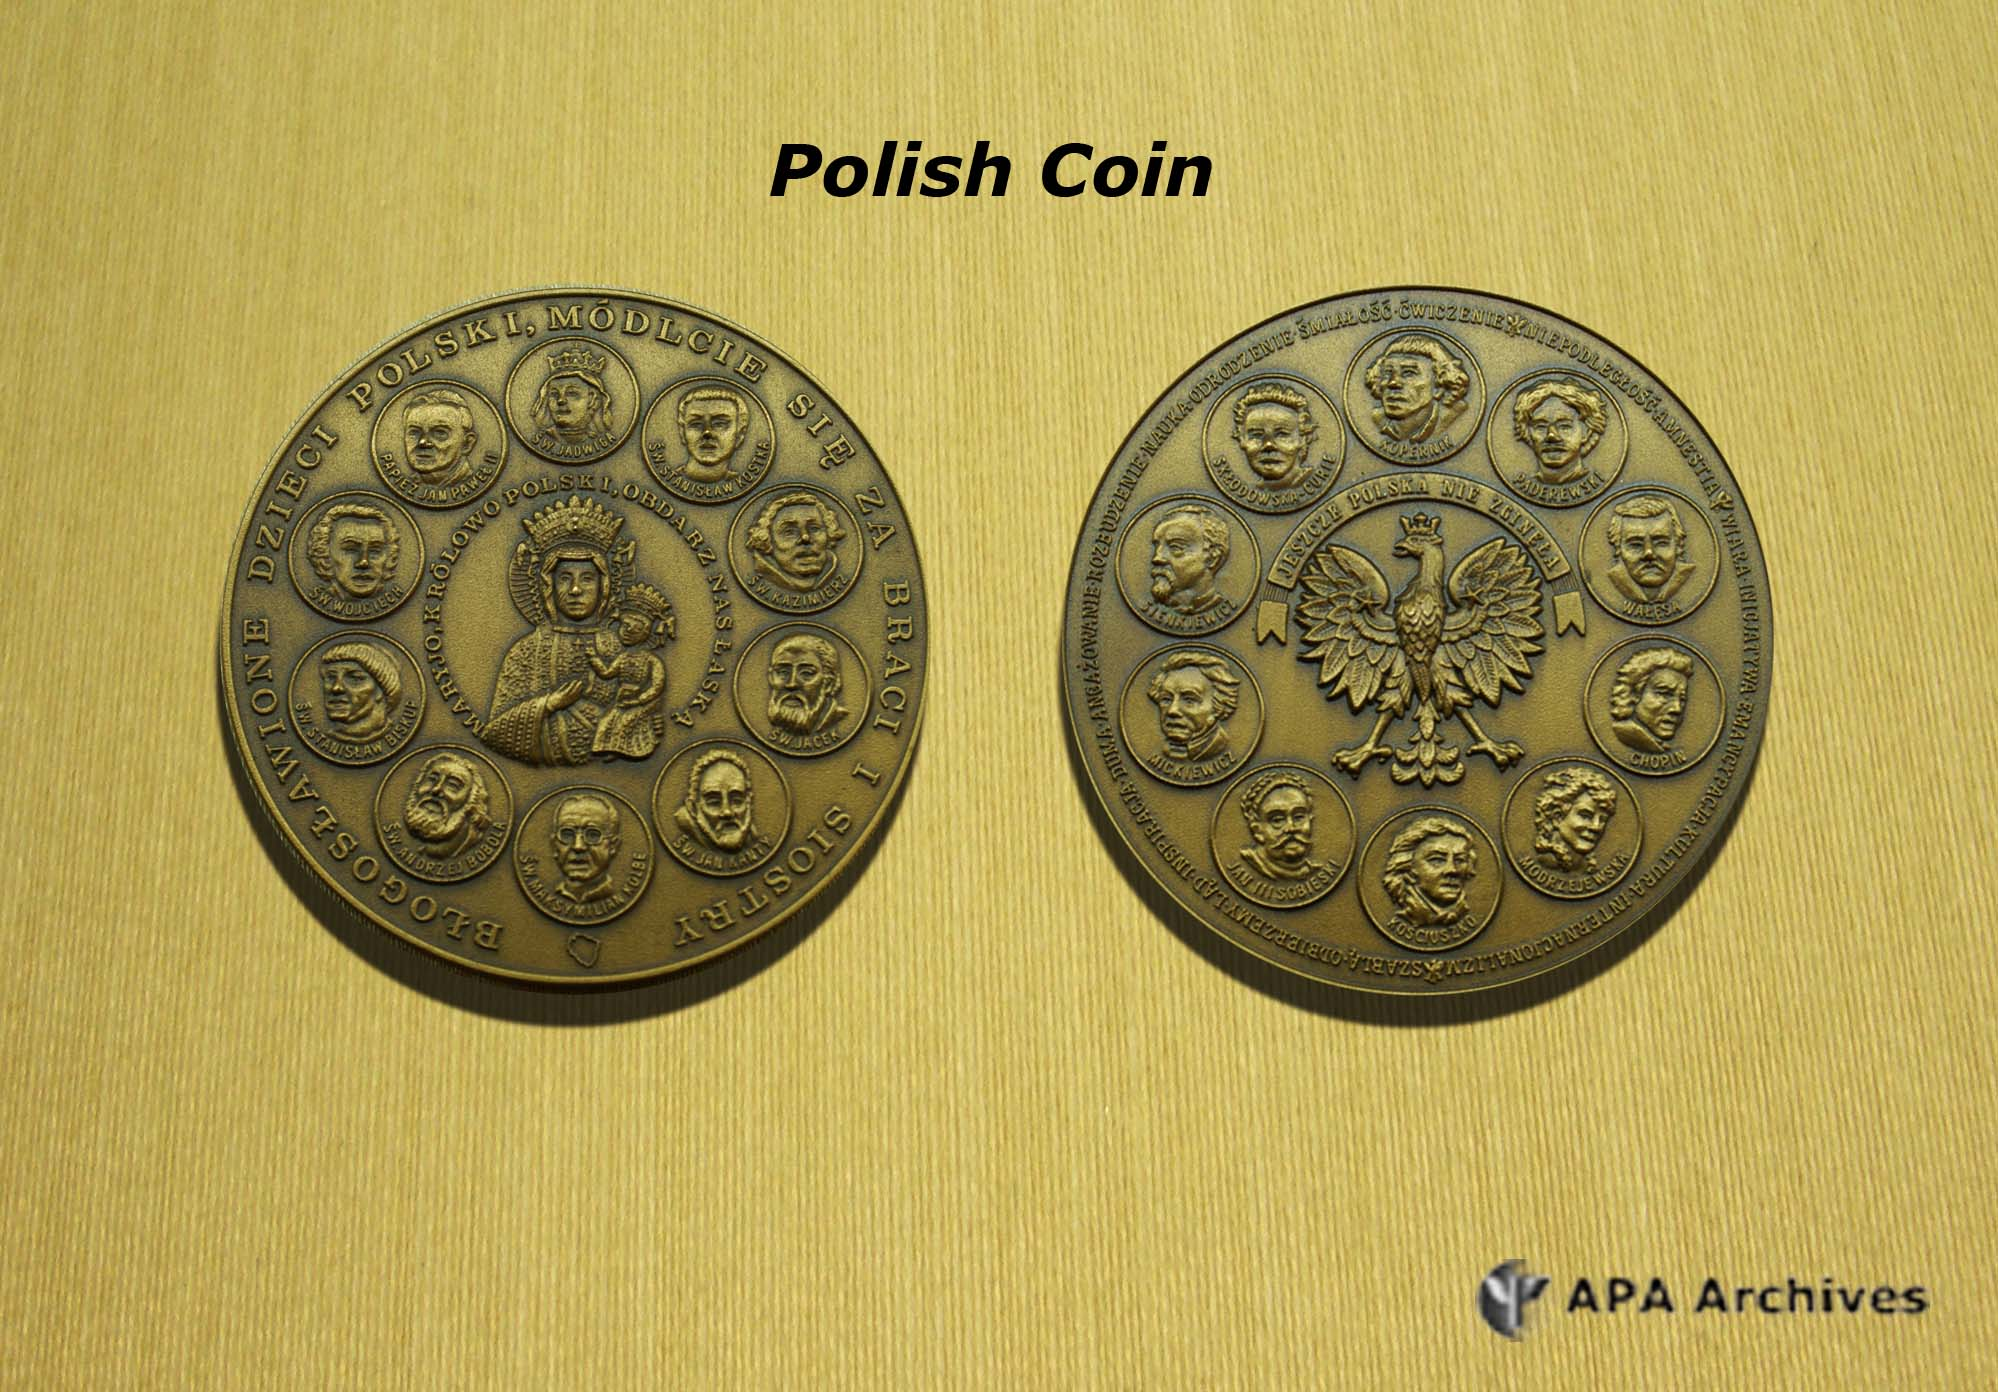 full-polish-coin